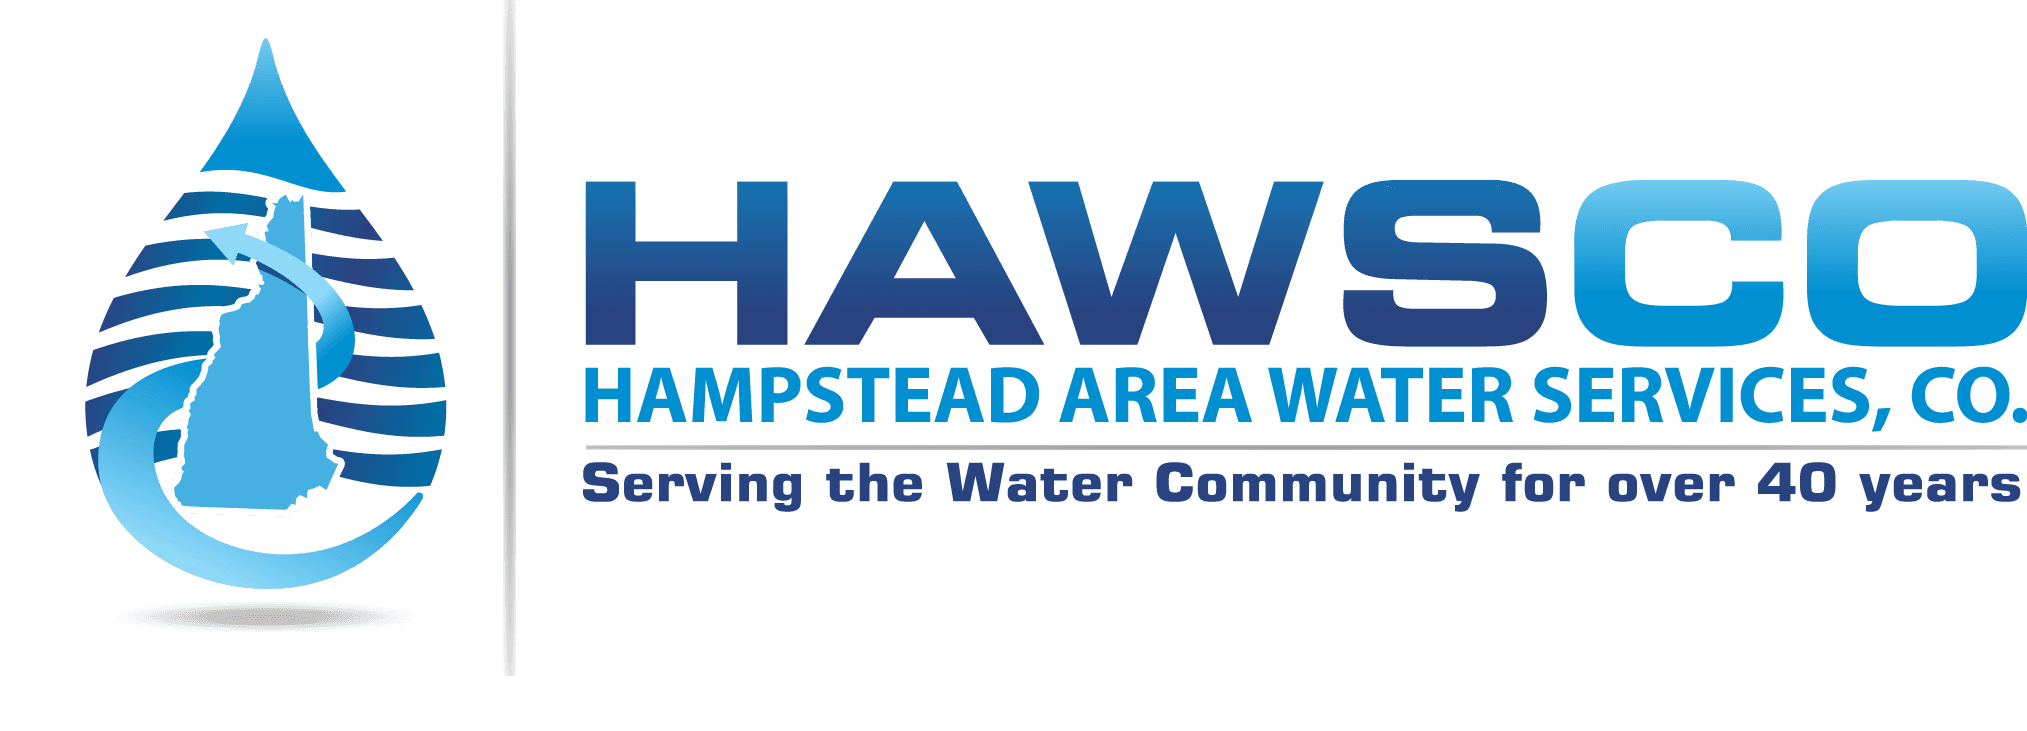 Hampstead Area Water Services Co